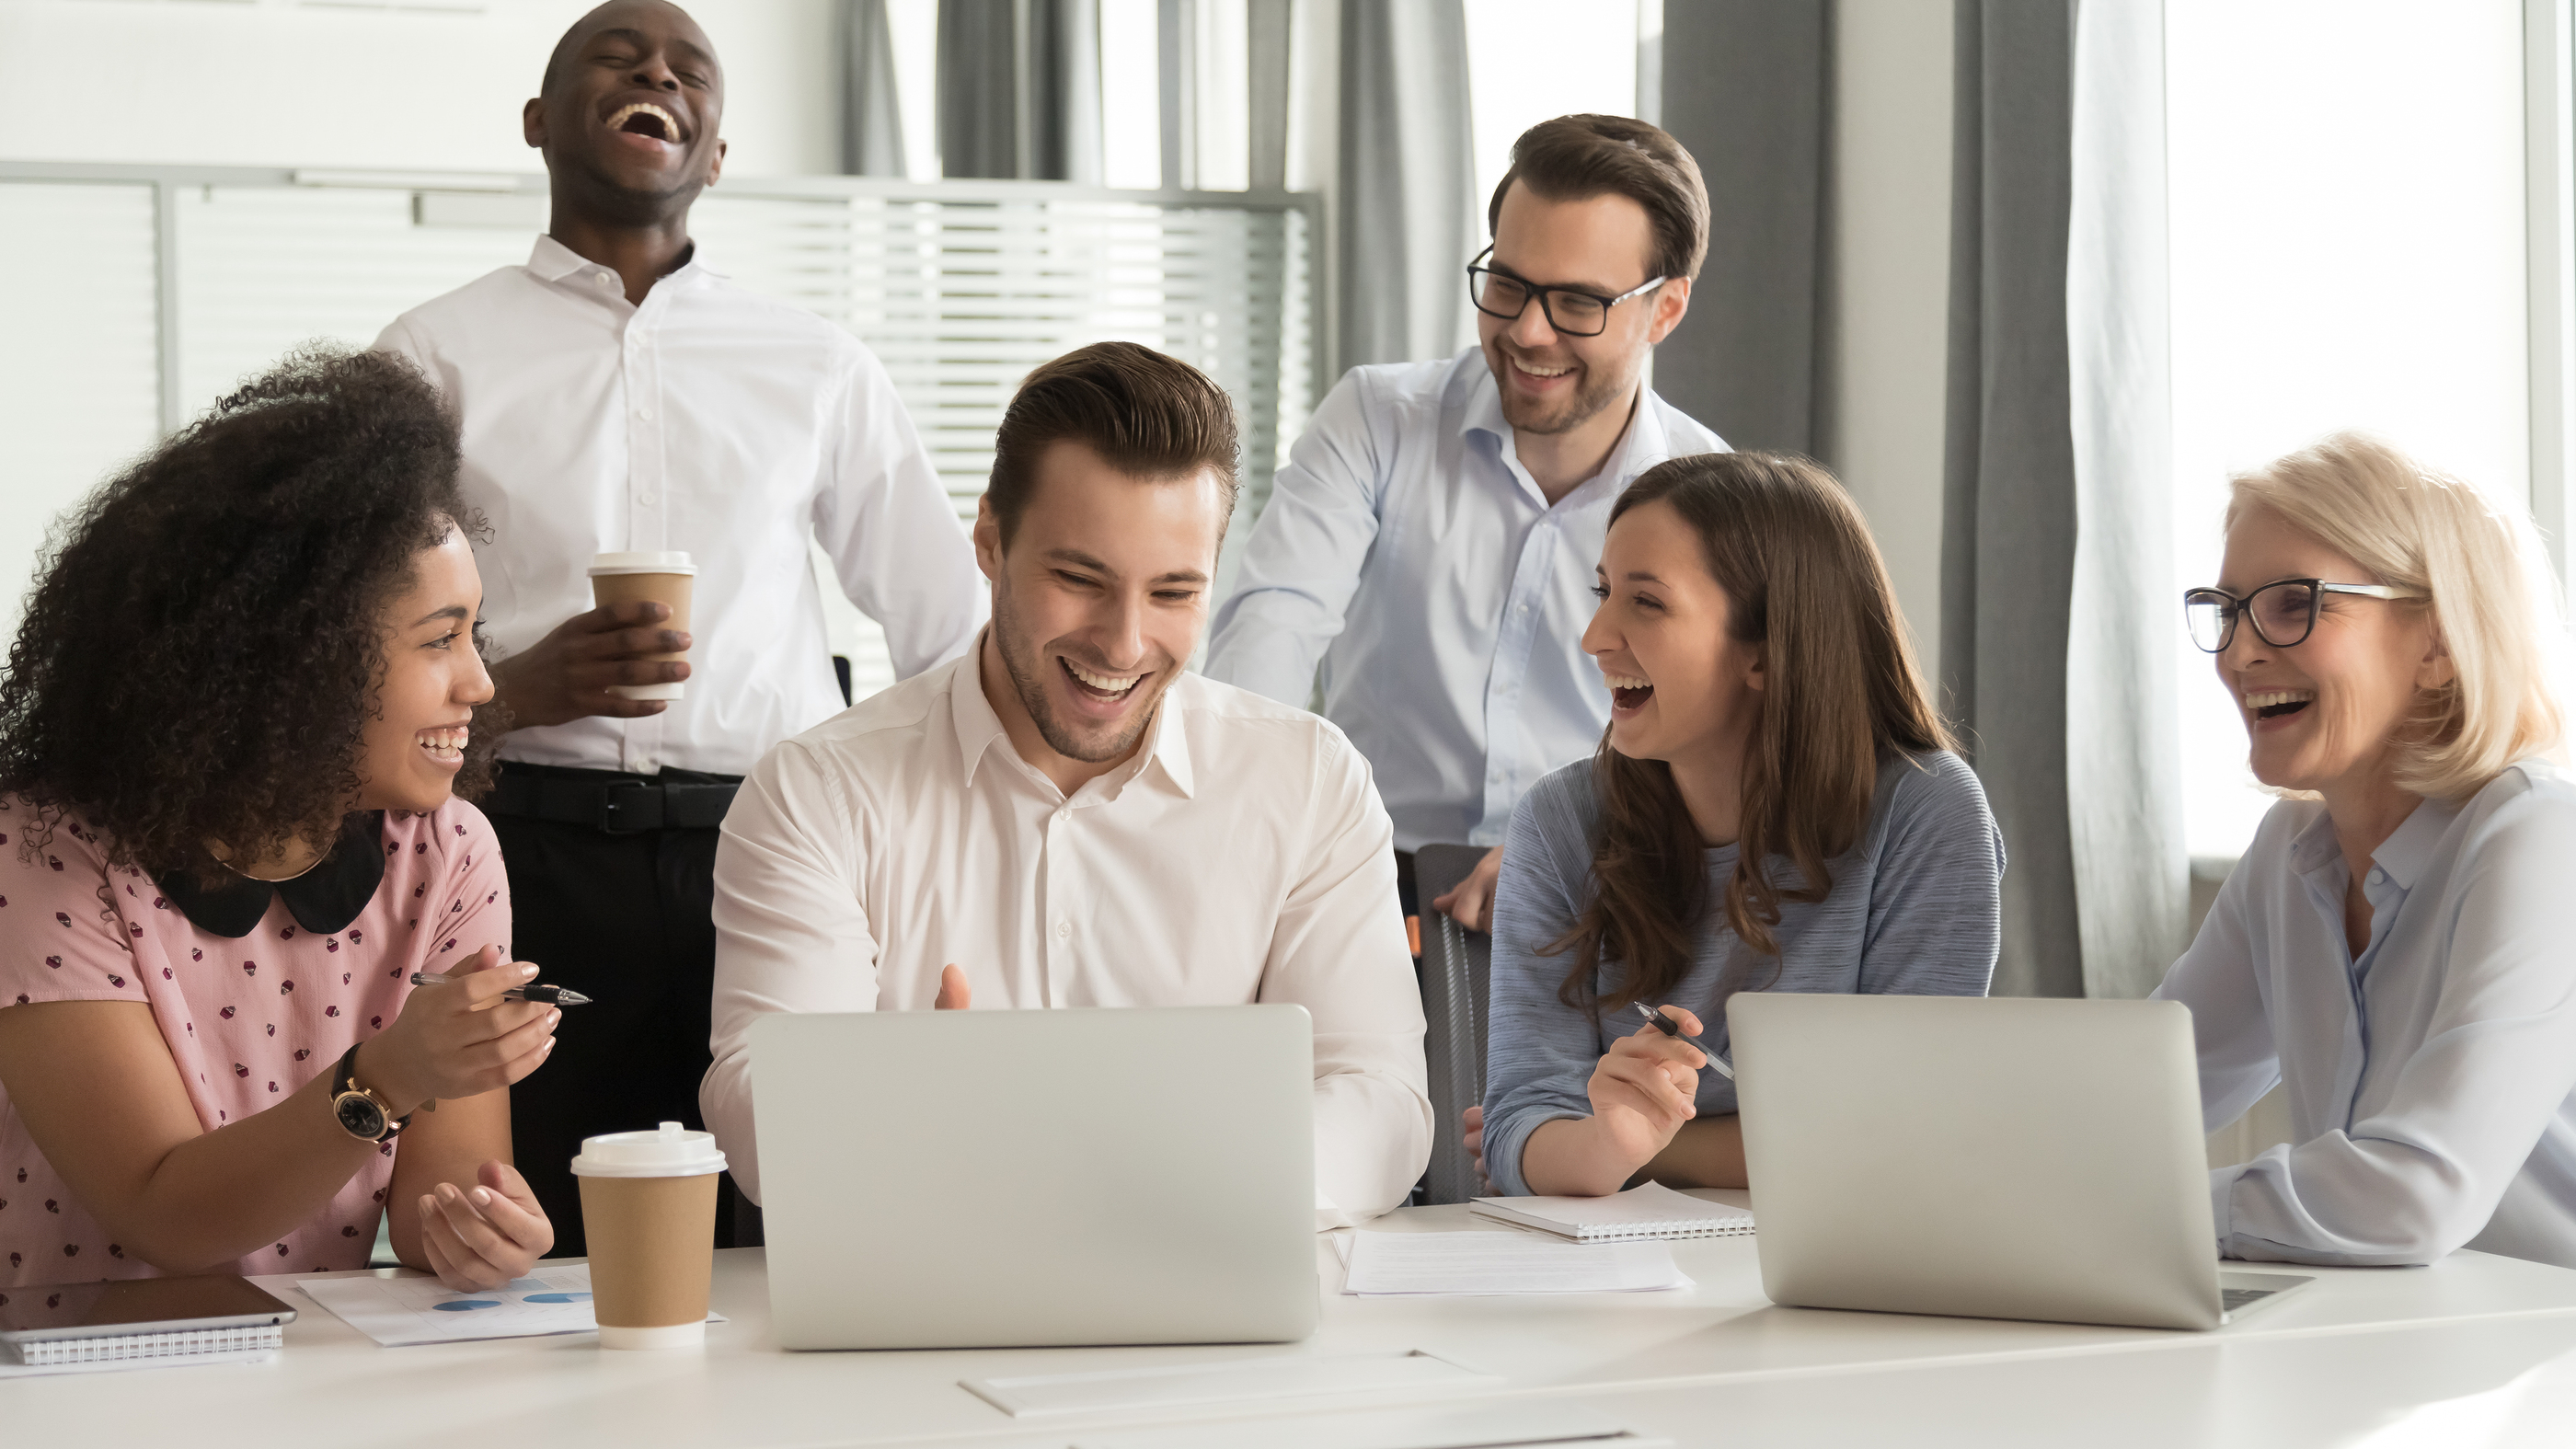 bigstock-Happy-Diverse-Office-Workers-T-288781663